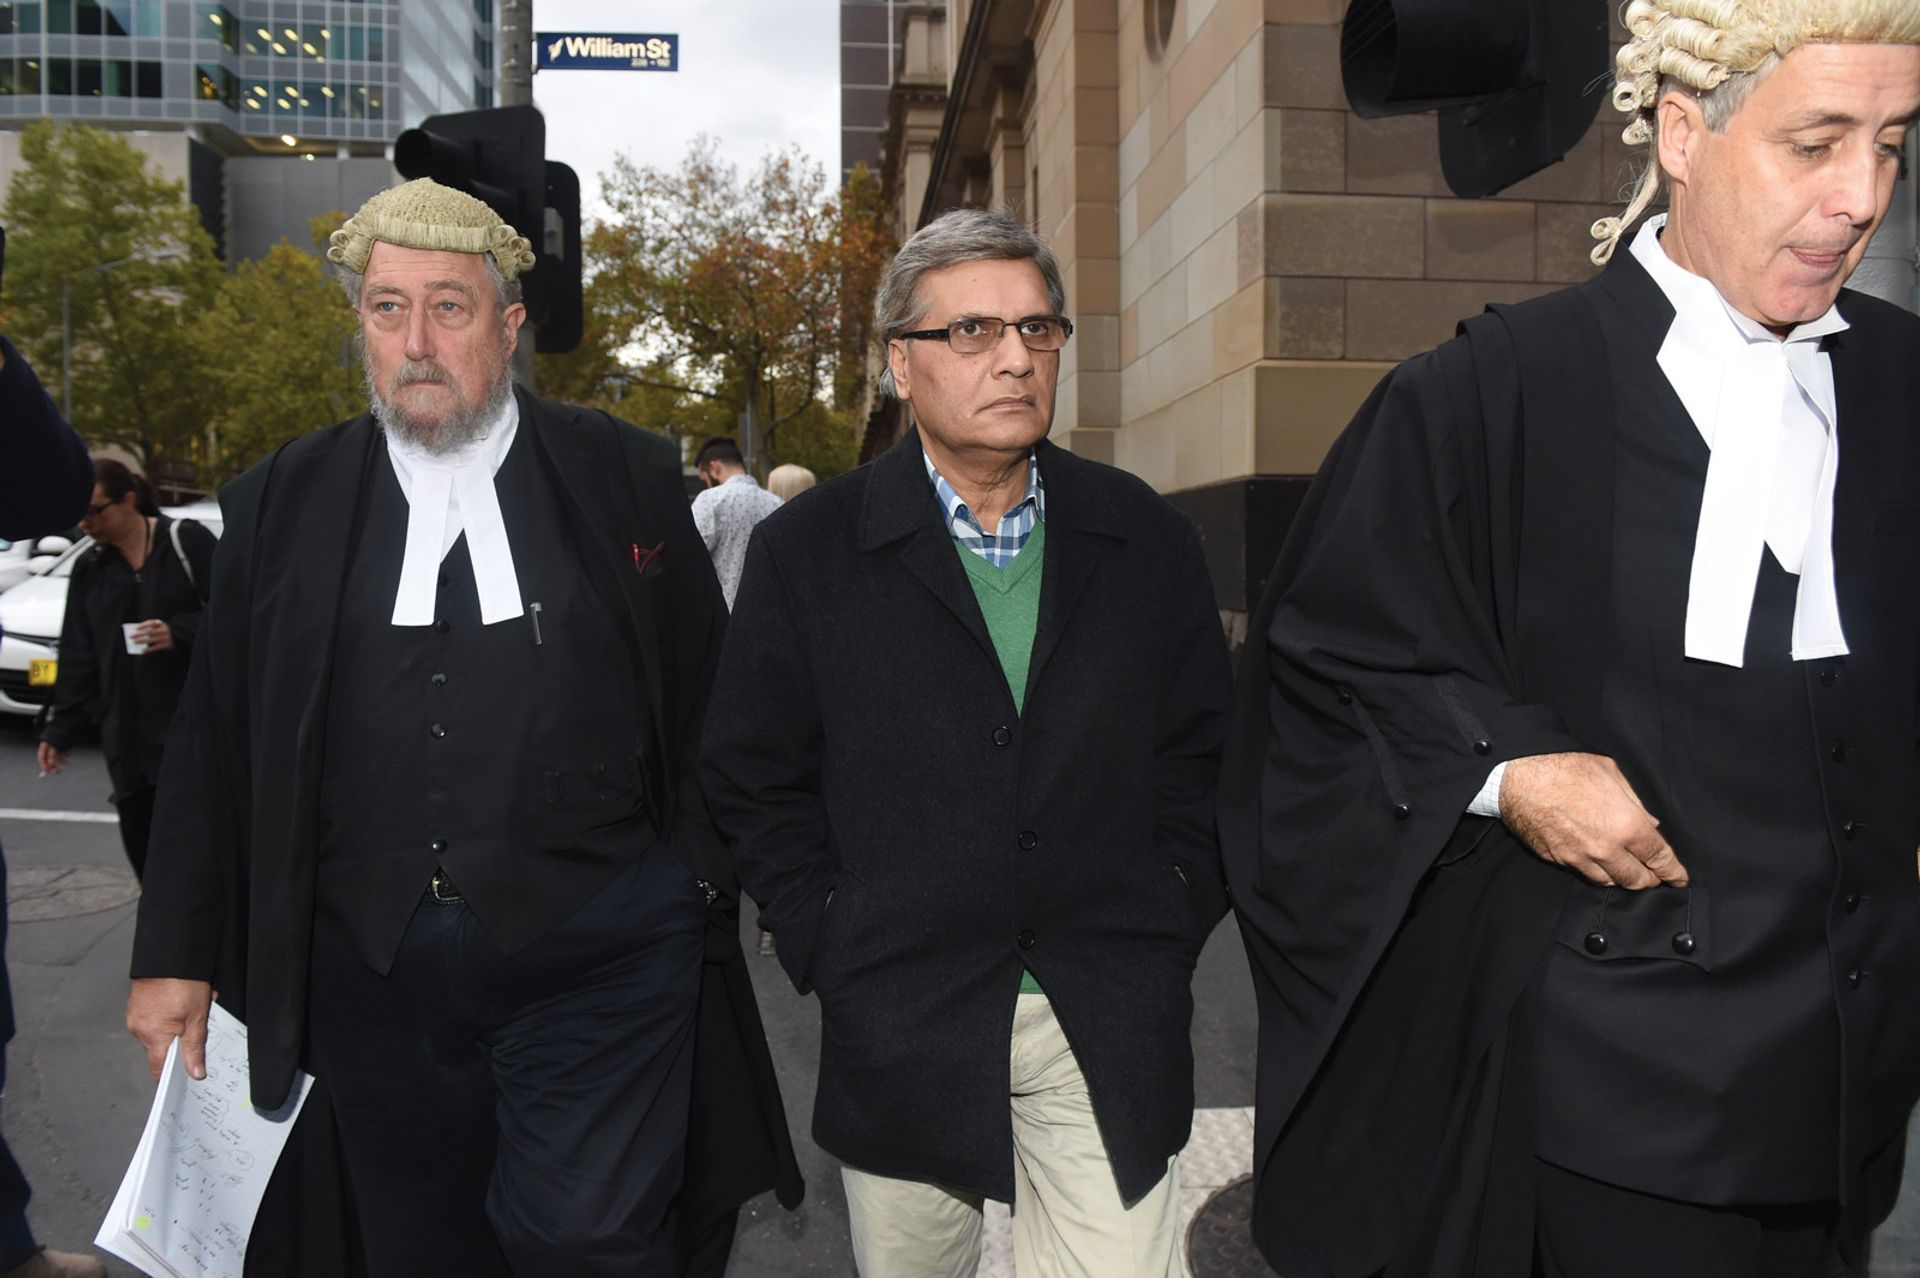 Art restorer Mohamed Aman Siddique (centre), pictured in May 2016 leaving the Victorian Supreme Court in Melbourne, where he was found guilty of art fraud, but later acquitted © TRACEY NEARMY/AAP Image